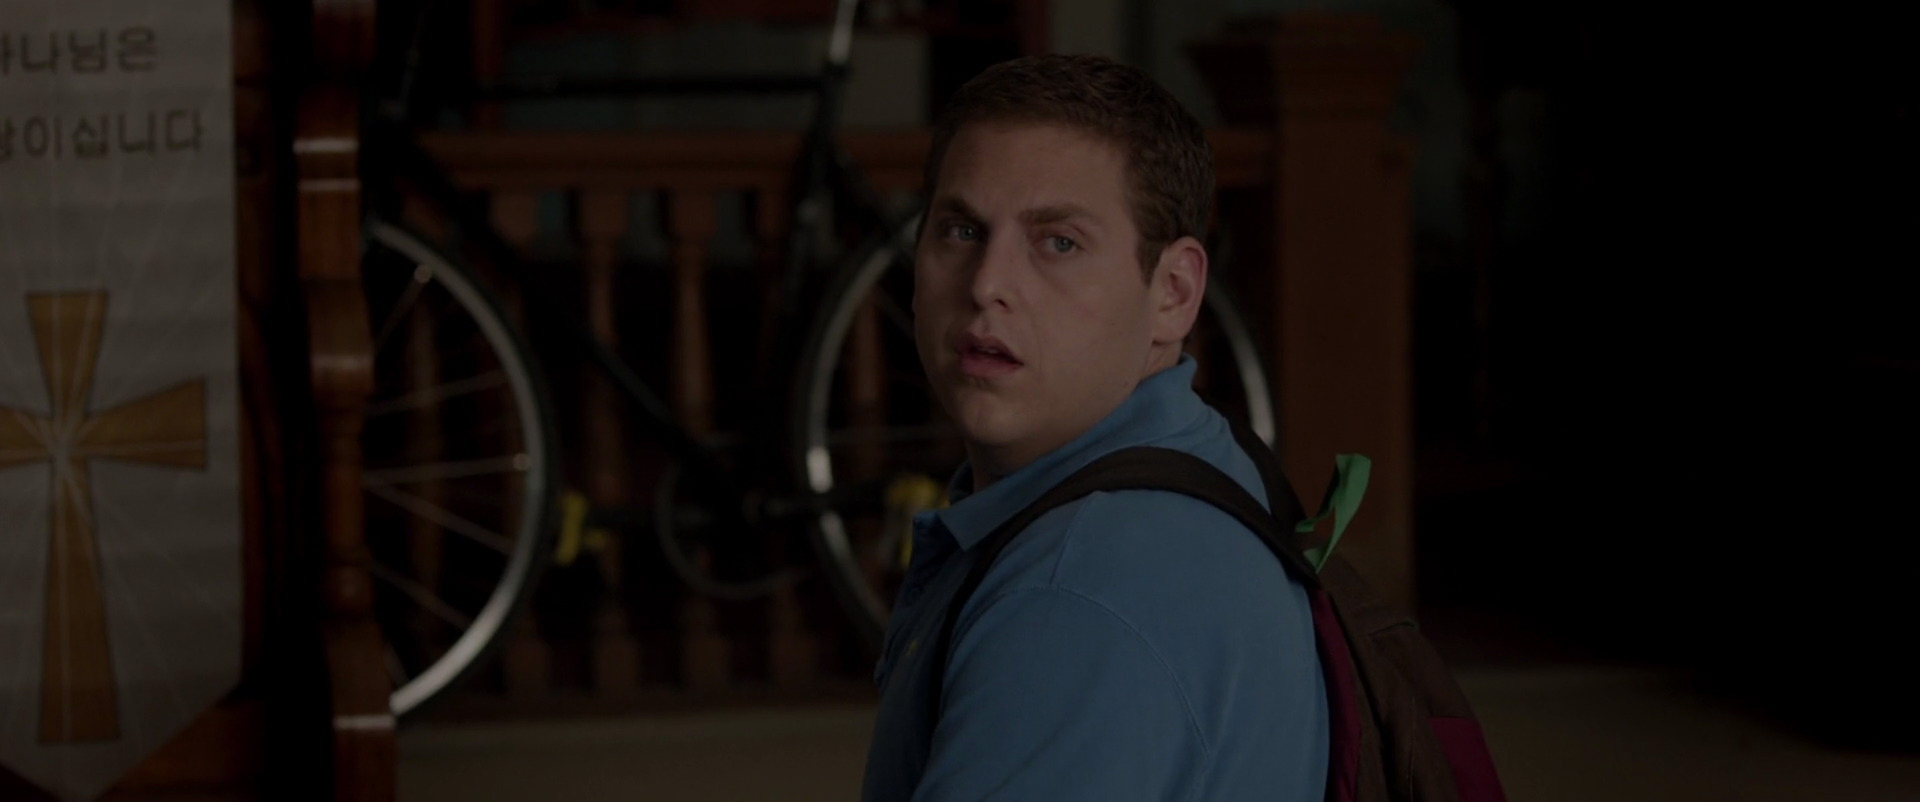 21 jump street film critique Directors phil lord and christopher miller's comedy co-stars jonah hill and channing tatum as a pair of cops who go undercover at a high school to bust a drug ring.